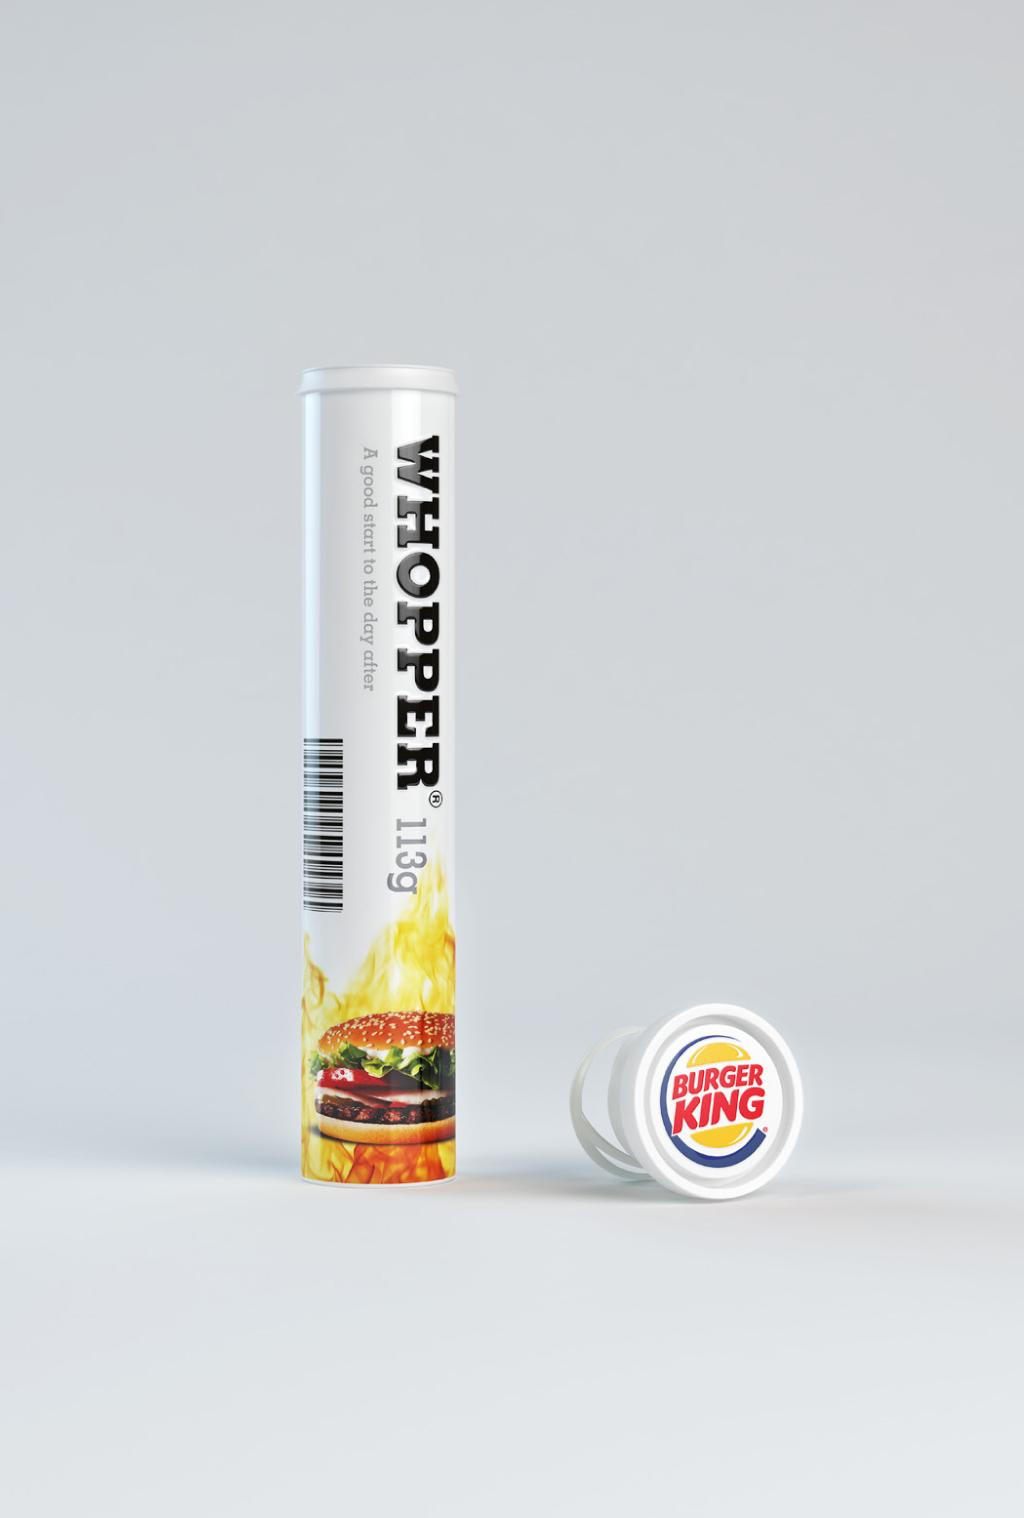 Burger King Print Advert By Shout: The day after | Ads of the World™